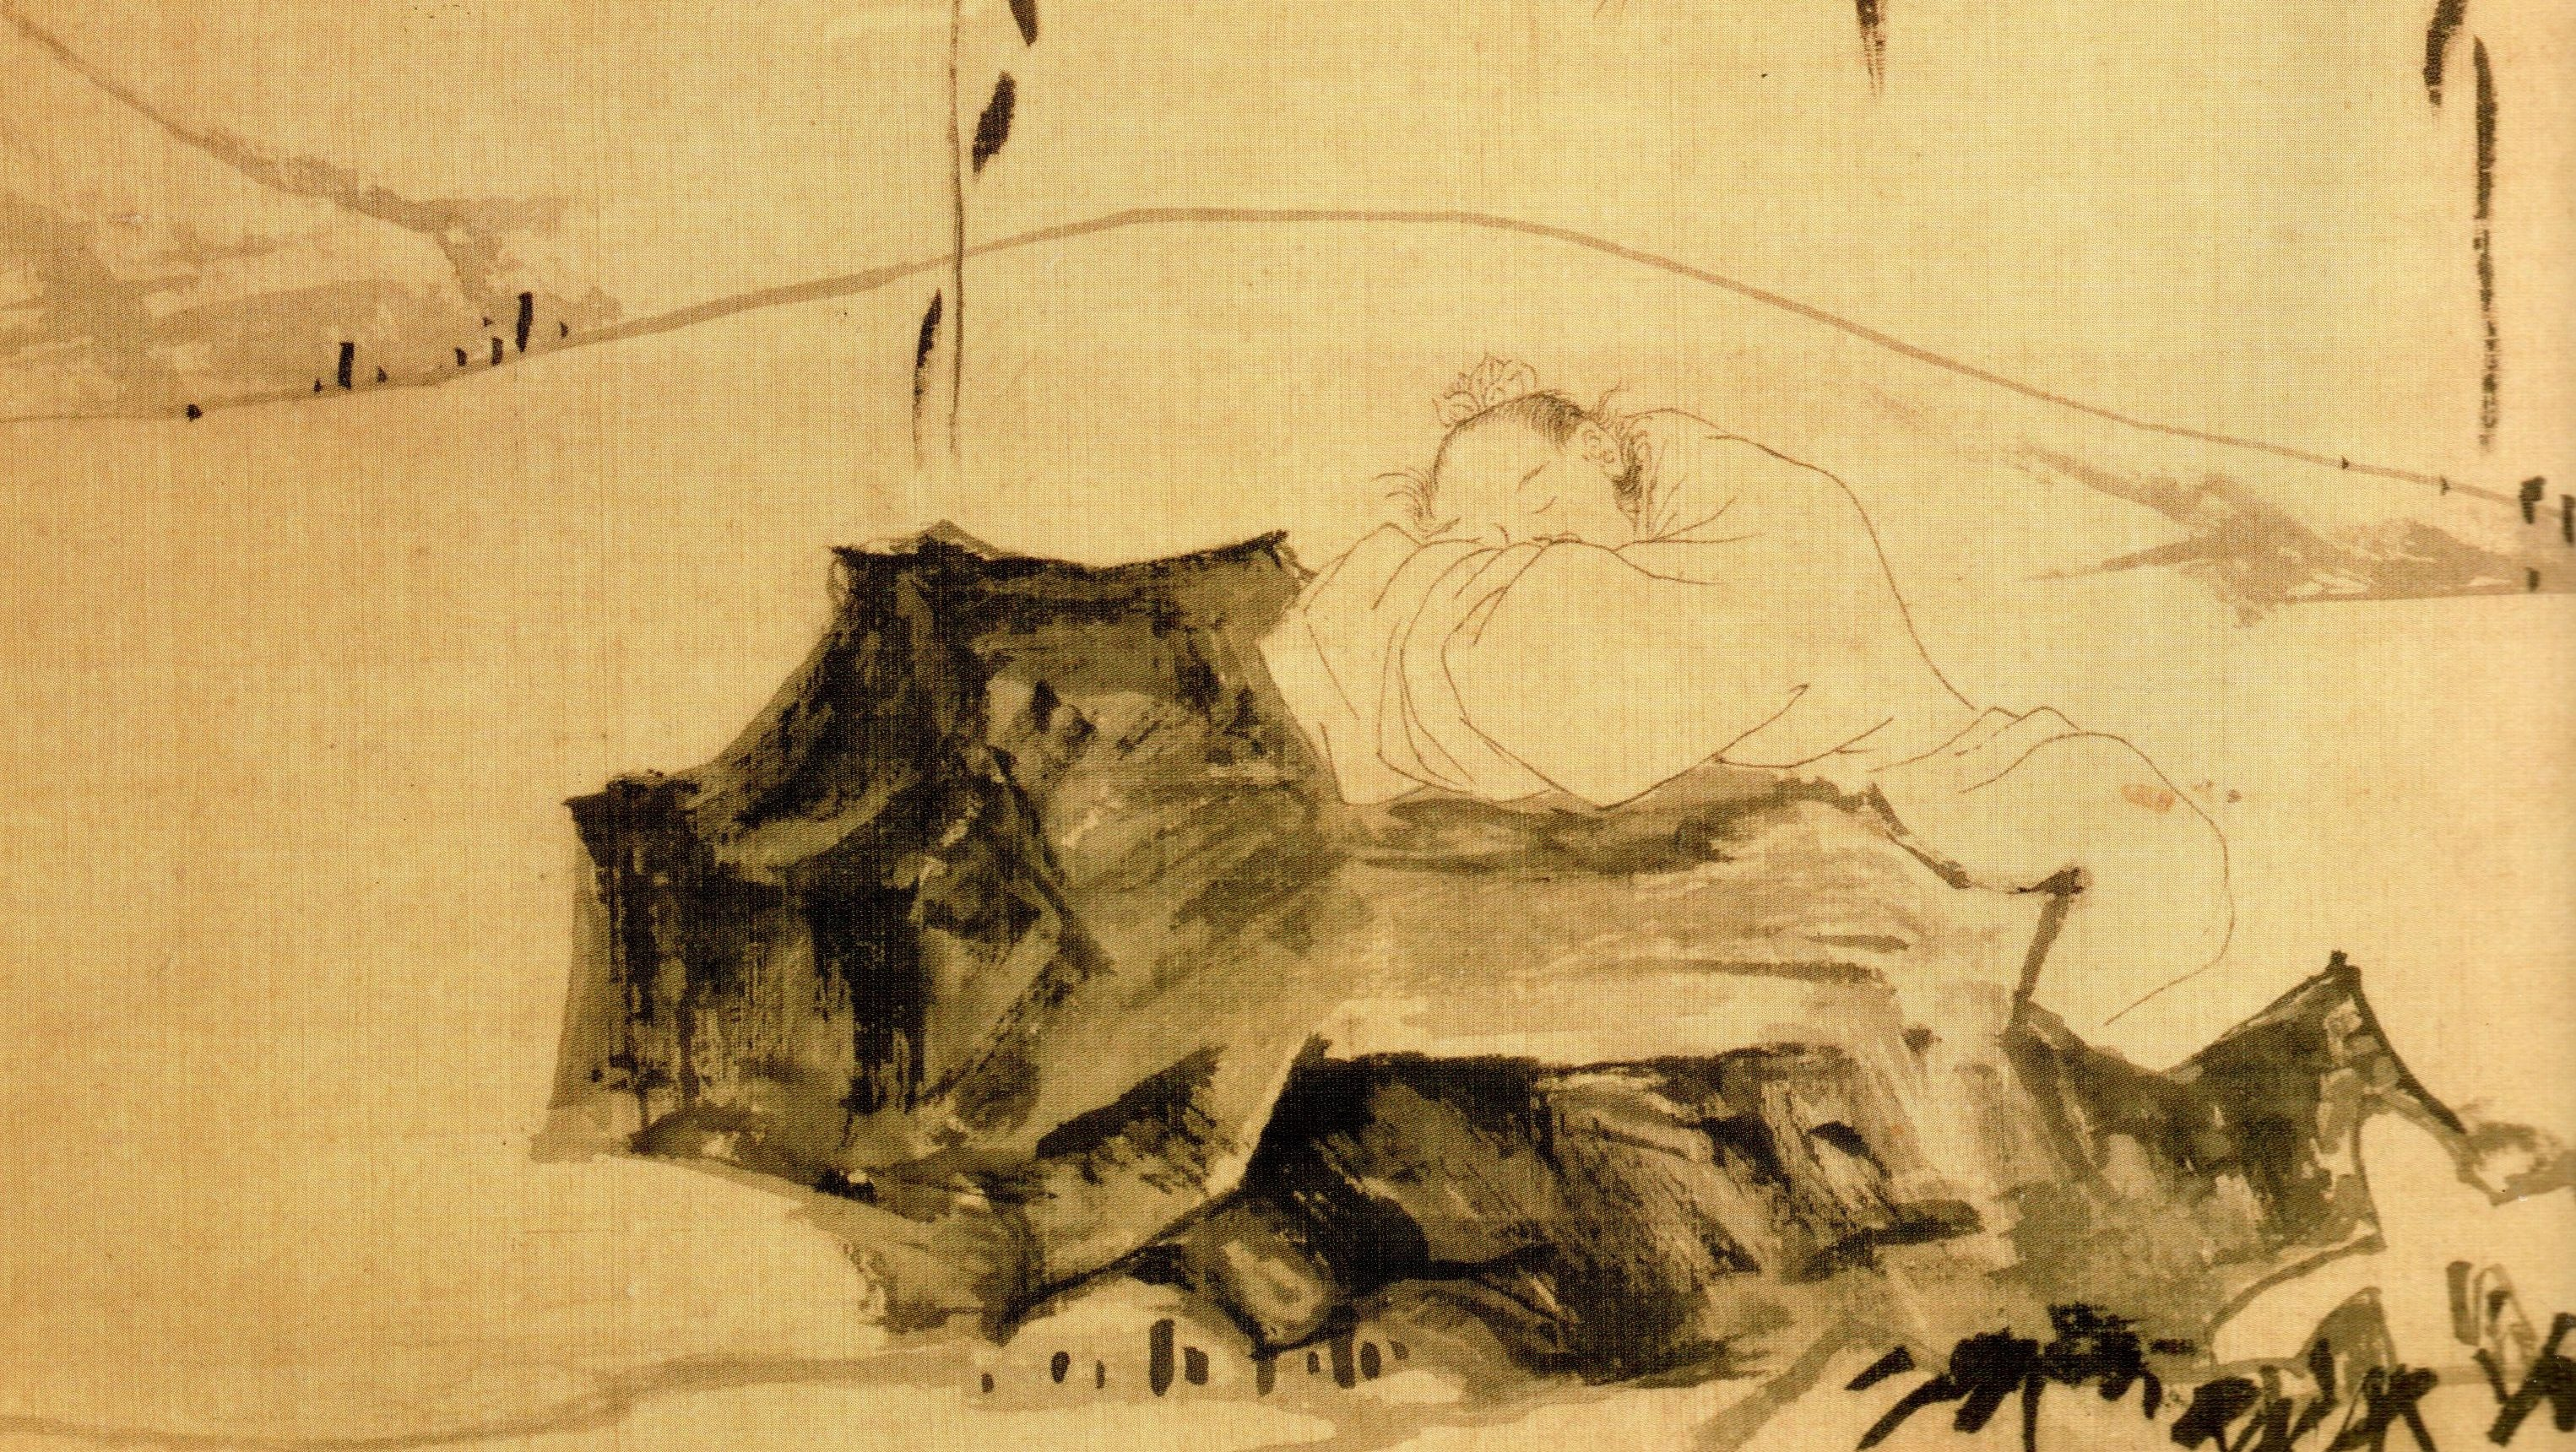 Zhuangzi Dreaming of a Butterfly, Ming dynasty, mid-16th century Ink on silk